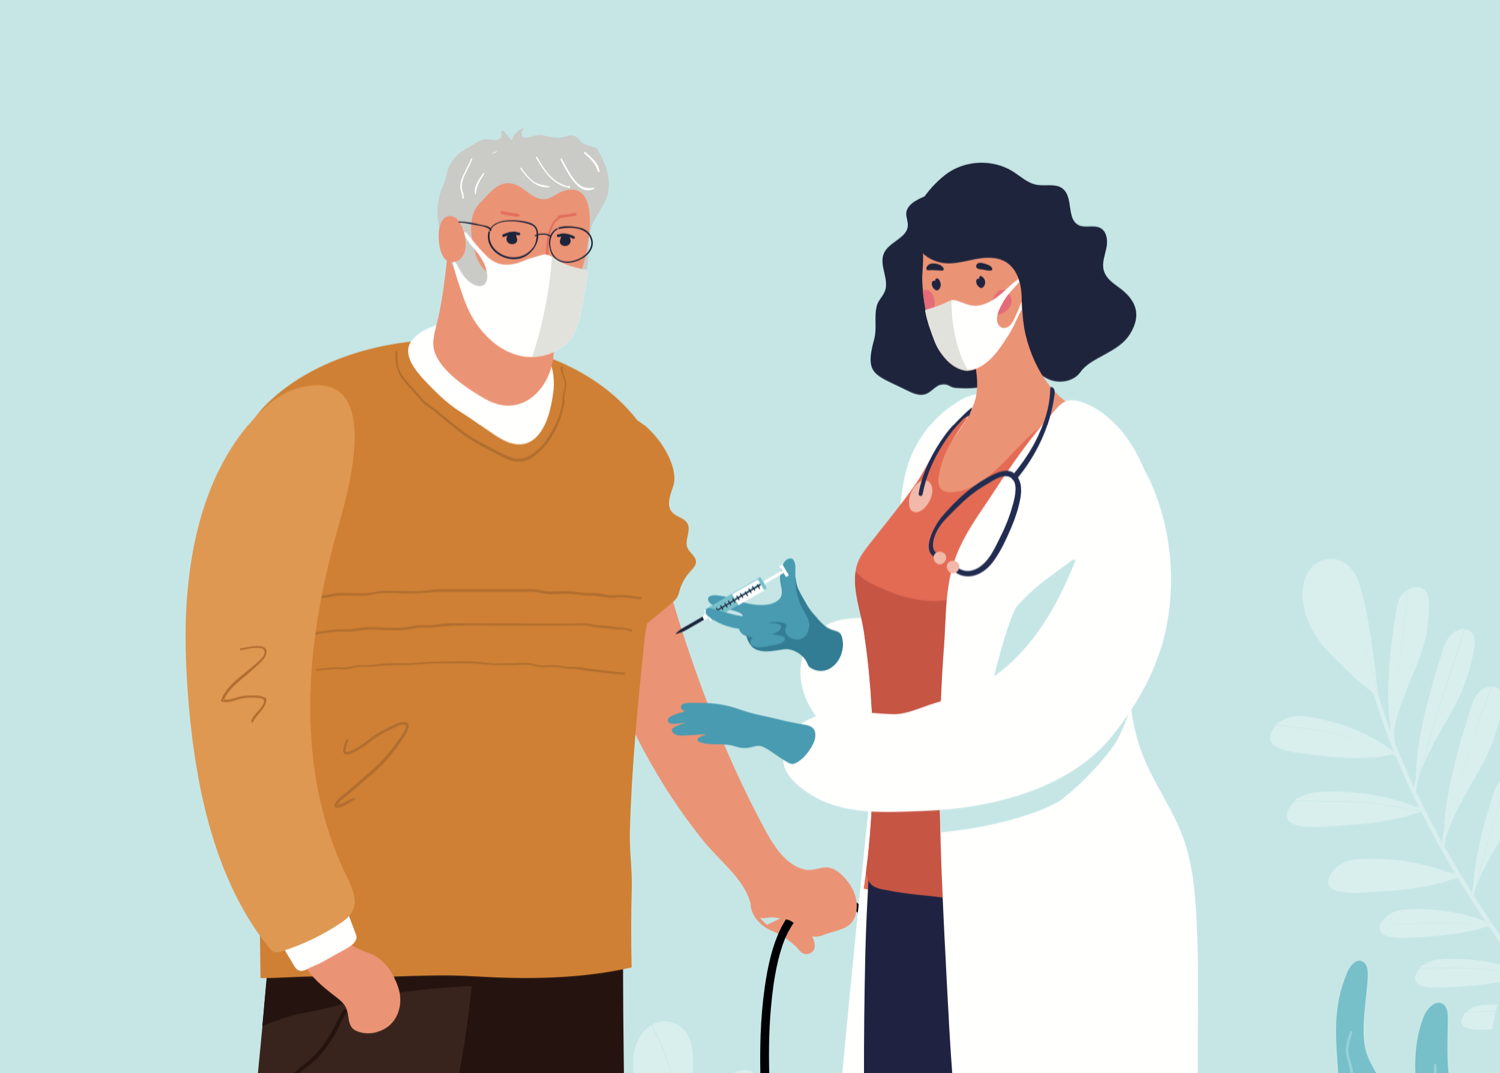 a woman wearing a mask in a lab coat wearing a stethoscope adminsters a vaccine shot to an older man, also wearing a mask